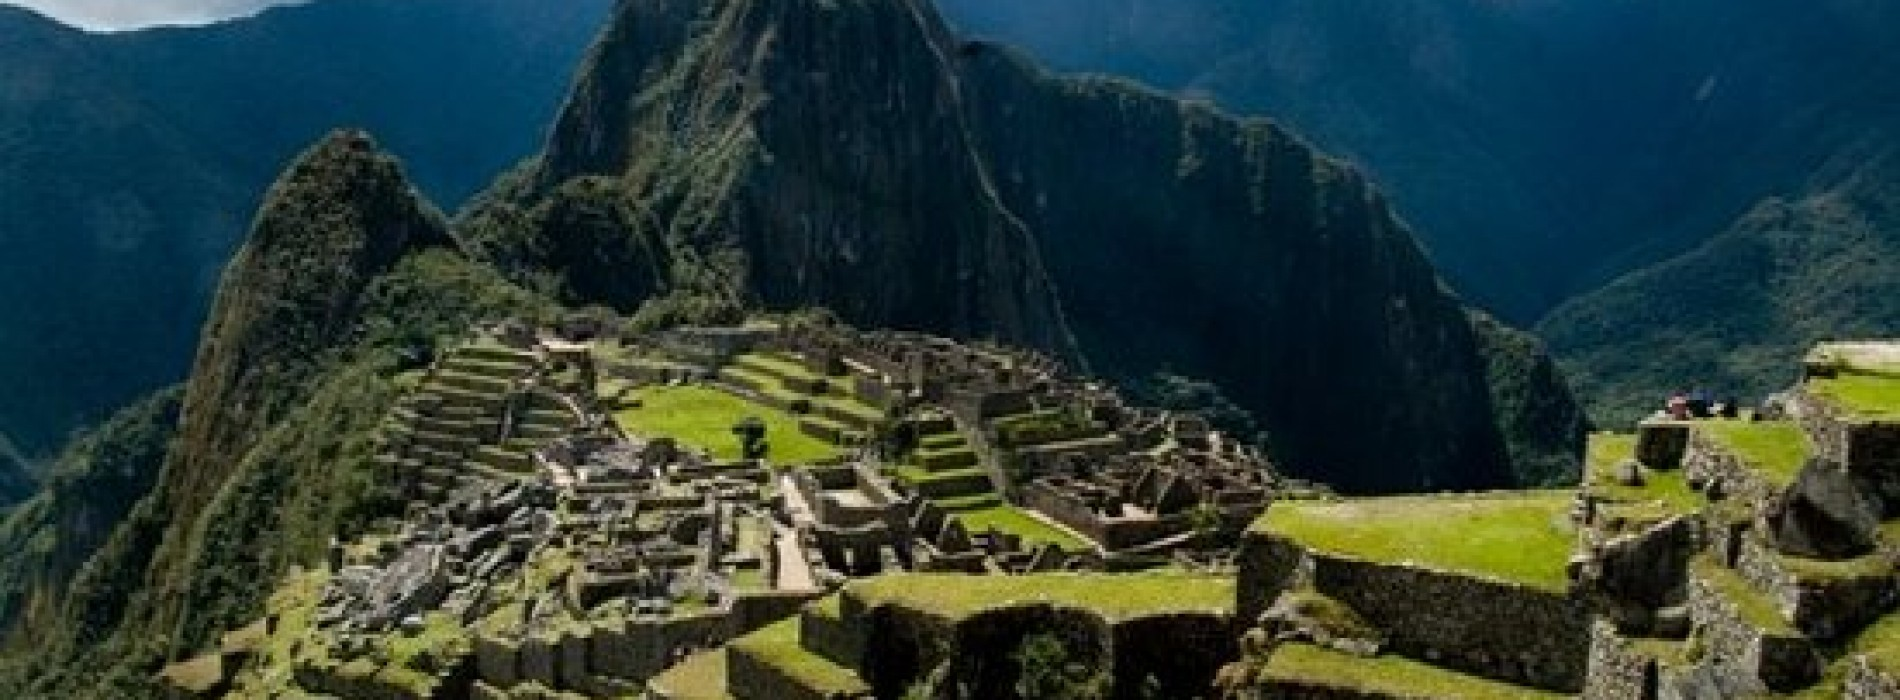 """Machu Picchu has bagged the title of travelers' favorite landmark in a new TripAdvisor ranking"